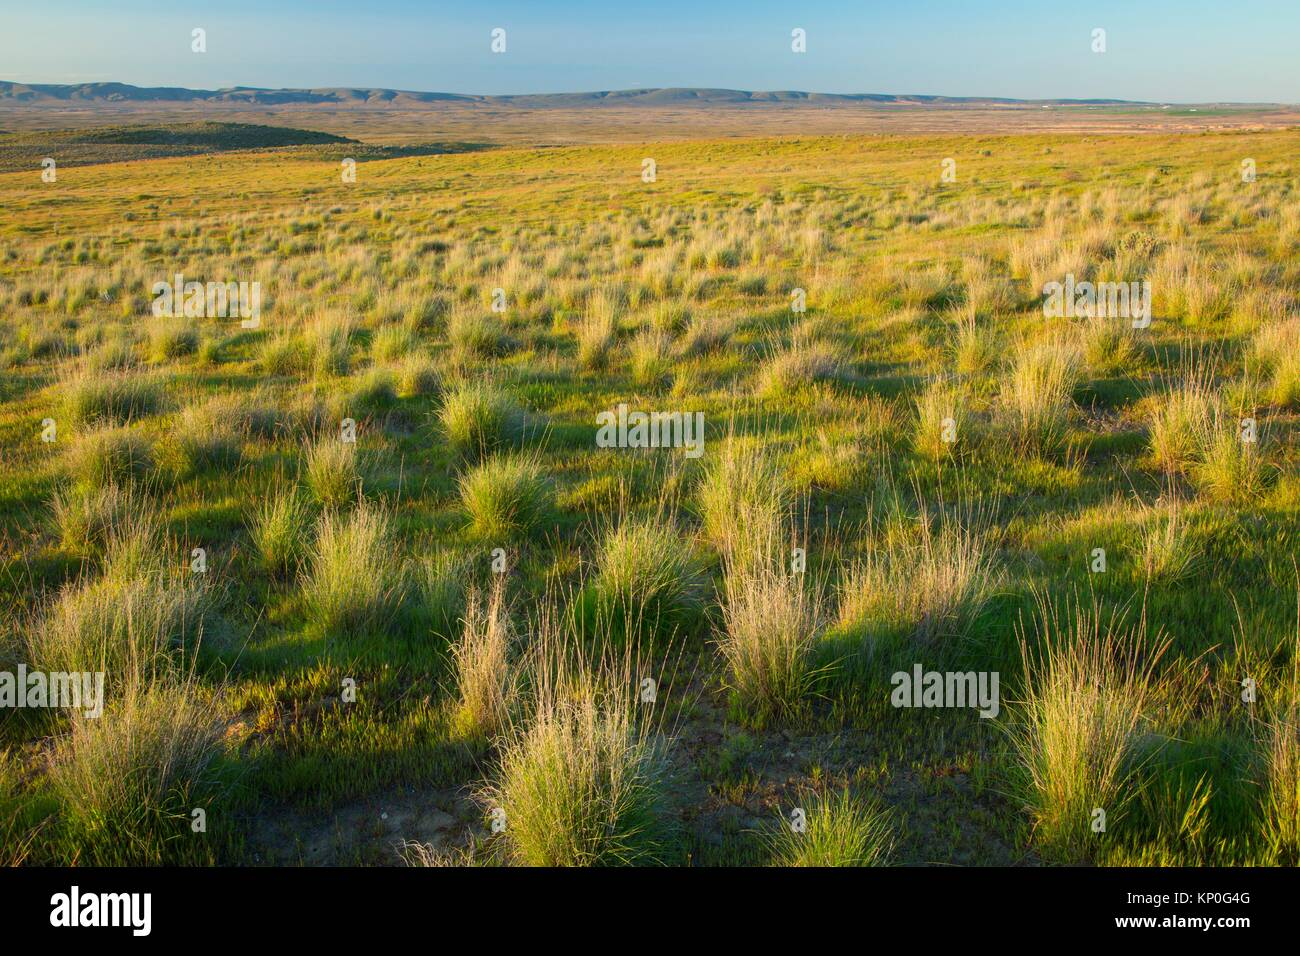 Grassland, Hanford Reach National Monument, Washington. - Stock Image